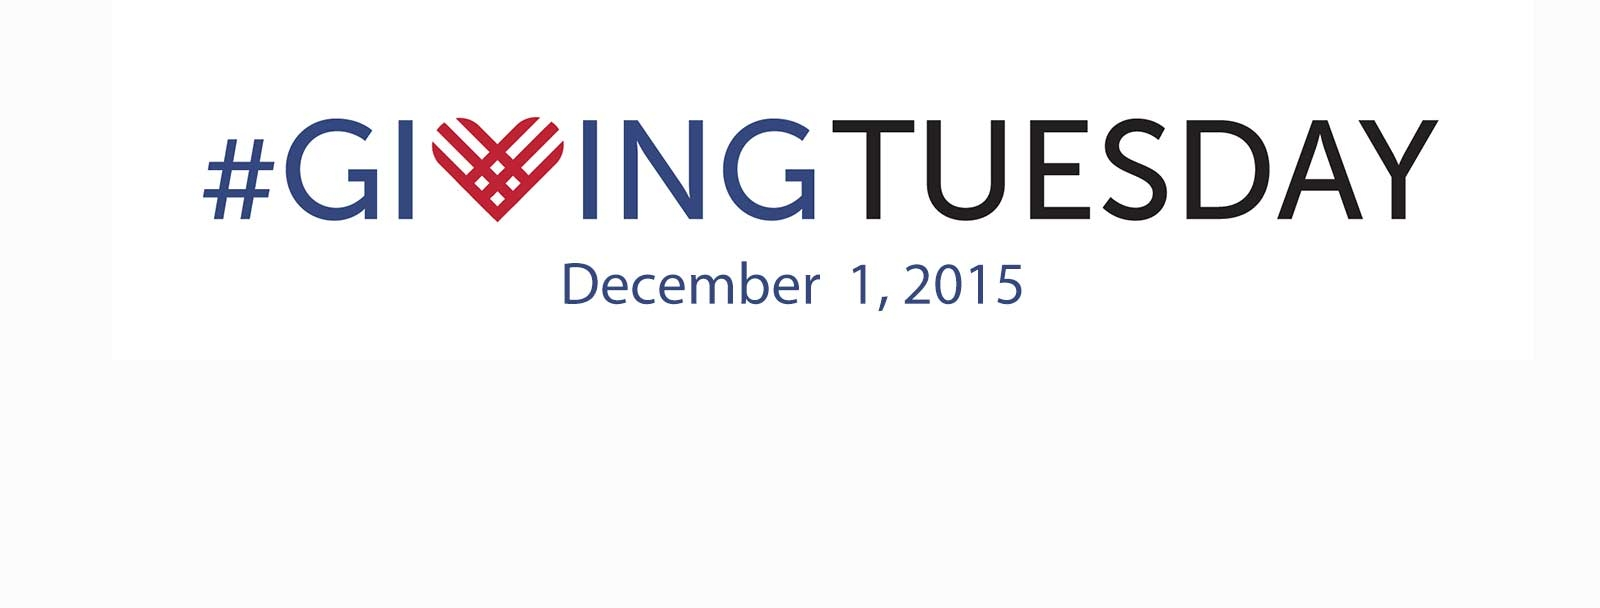 Giving Tuesday is Dec. 1, 2015